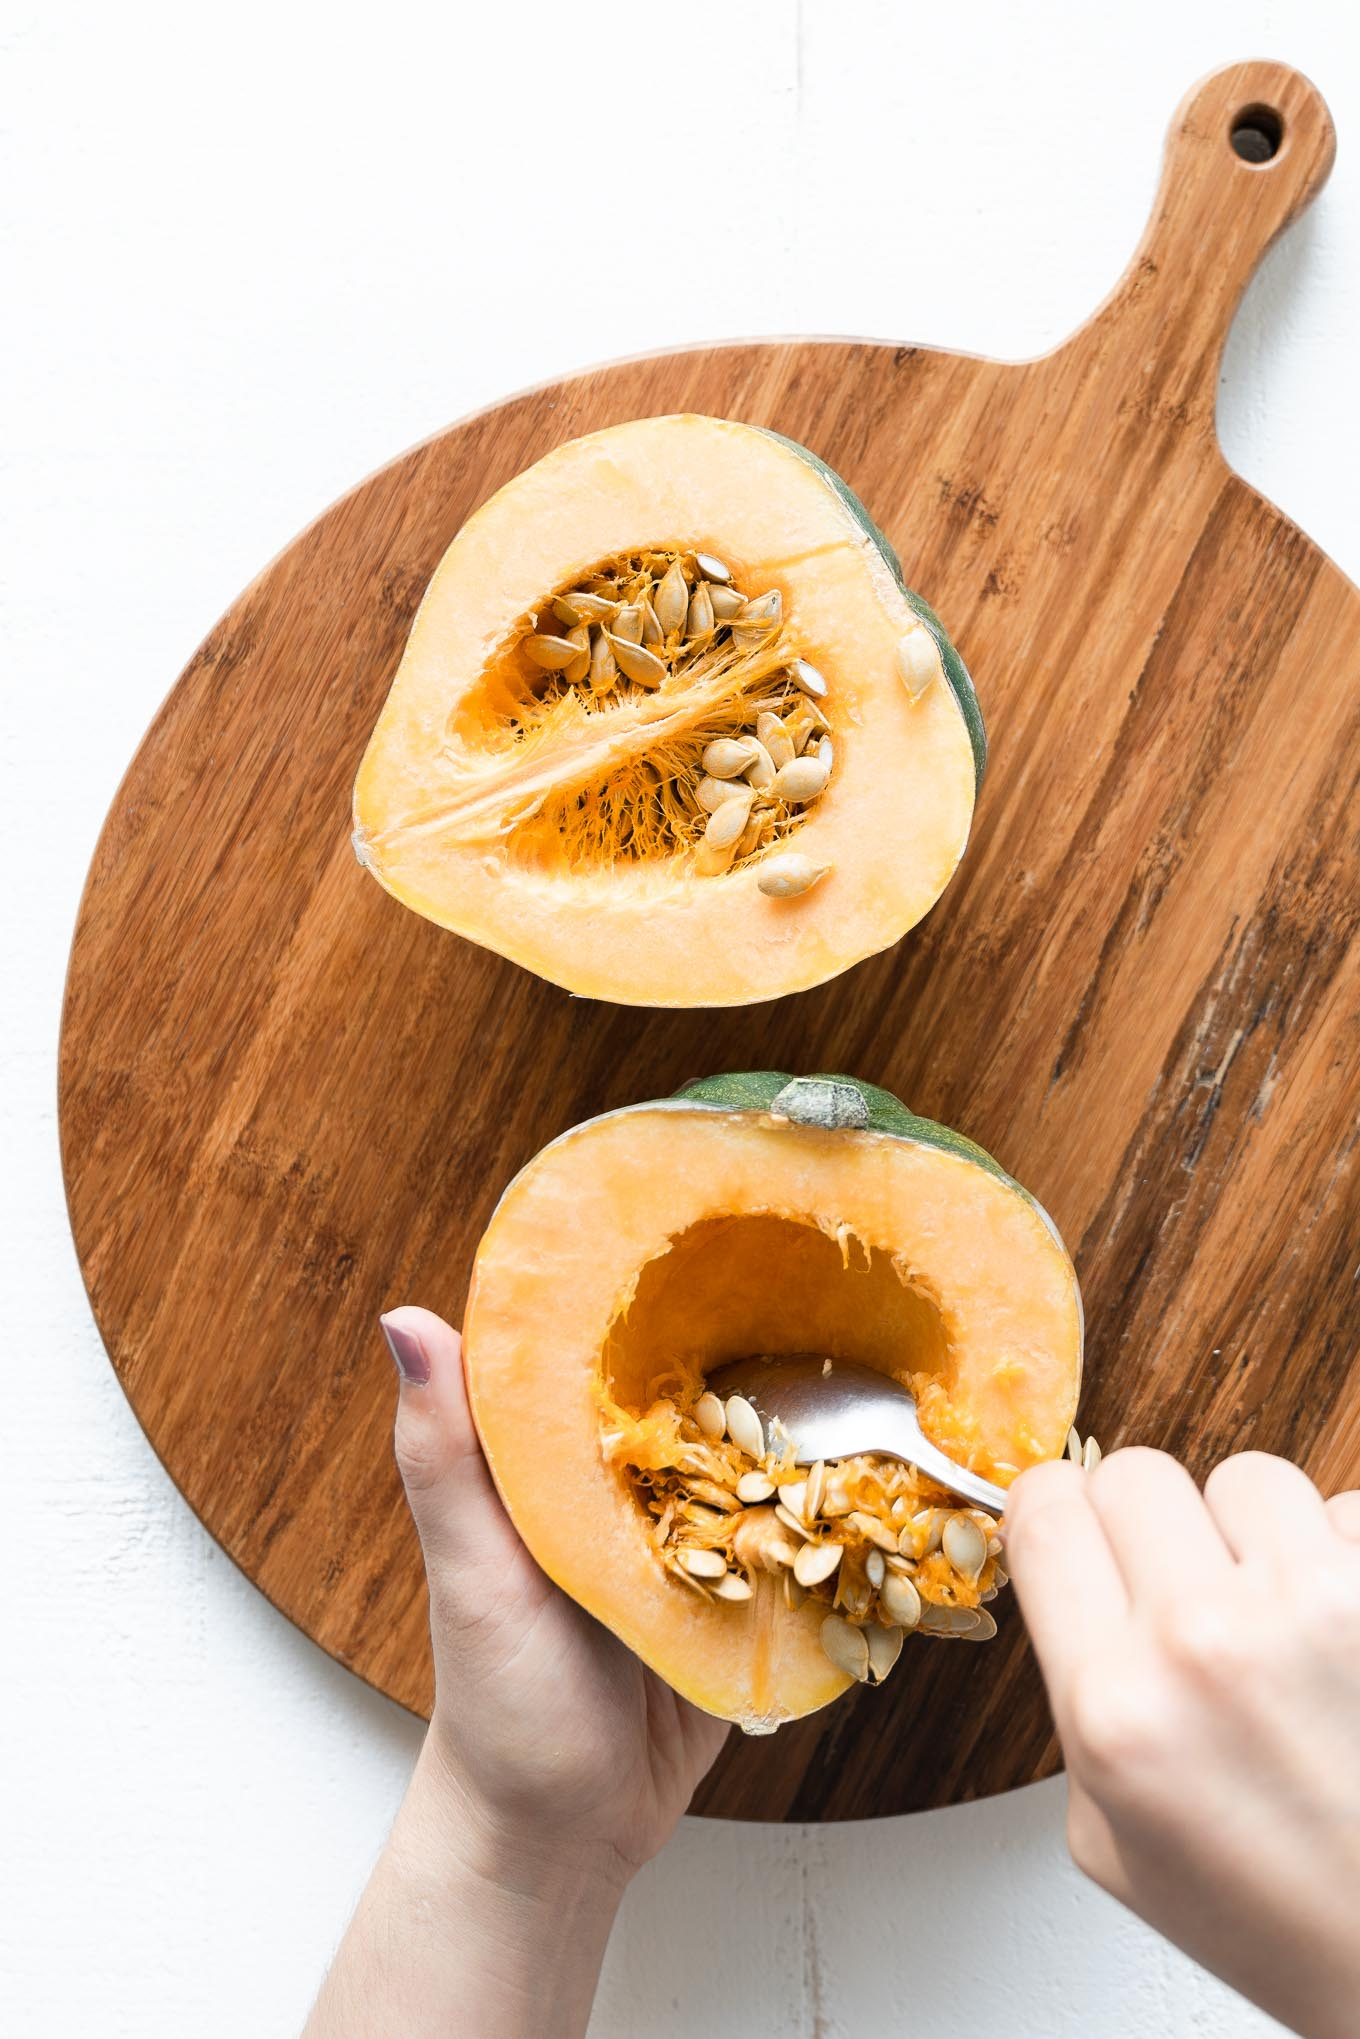 Scraping seeds out of acorn squash half with a spoon